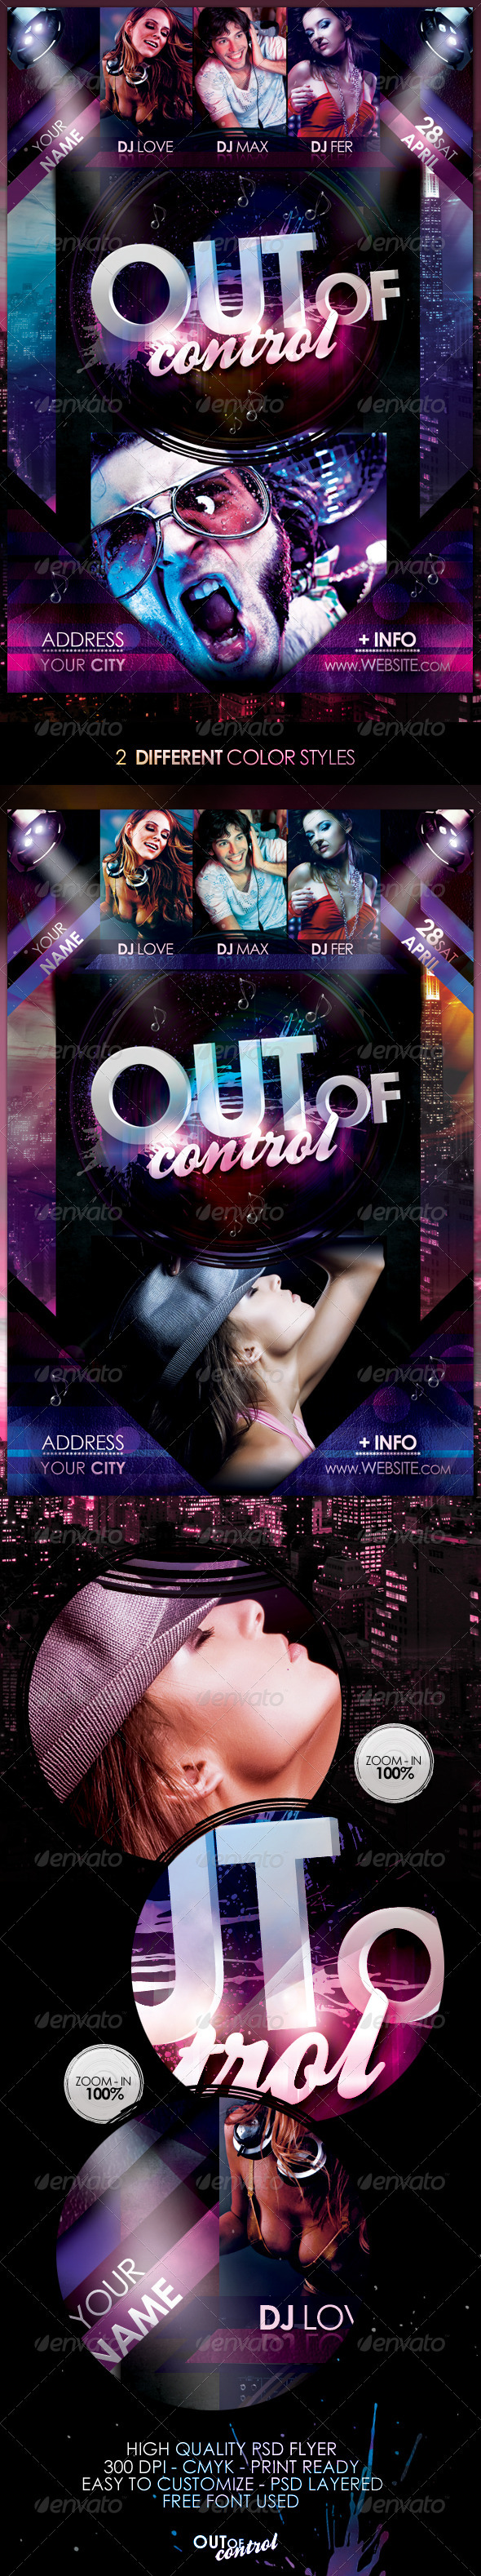 Out Of Control Flyer Template - Flyers Print Templates